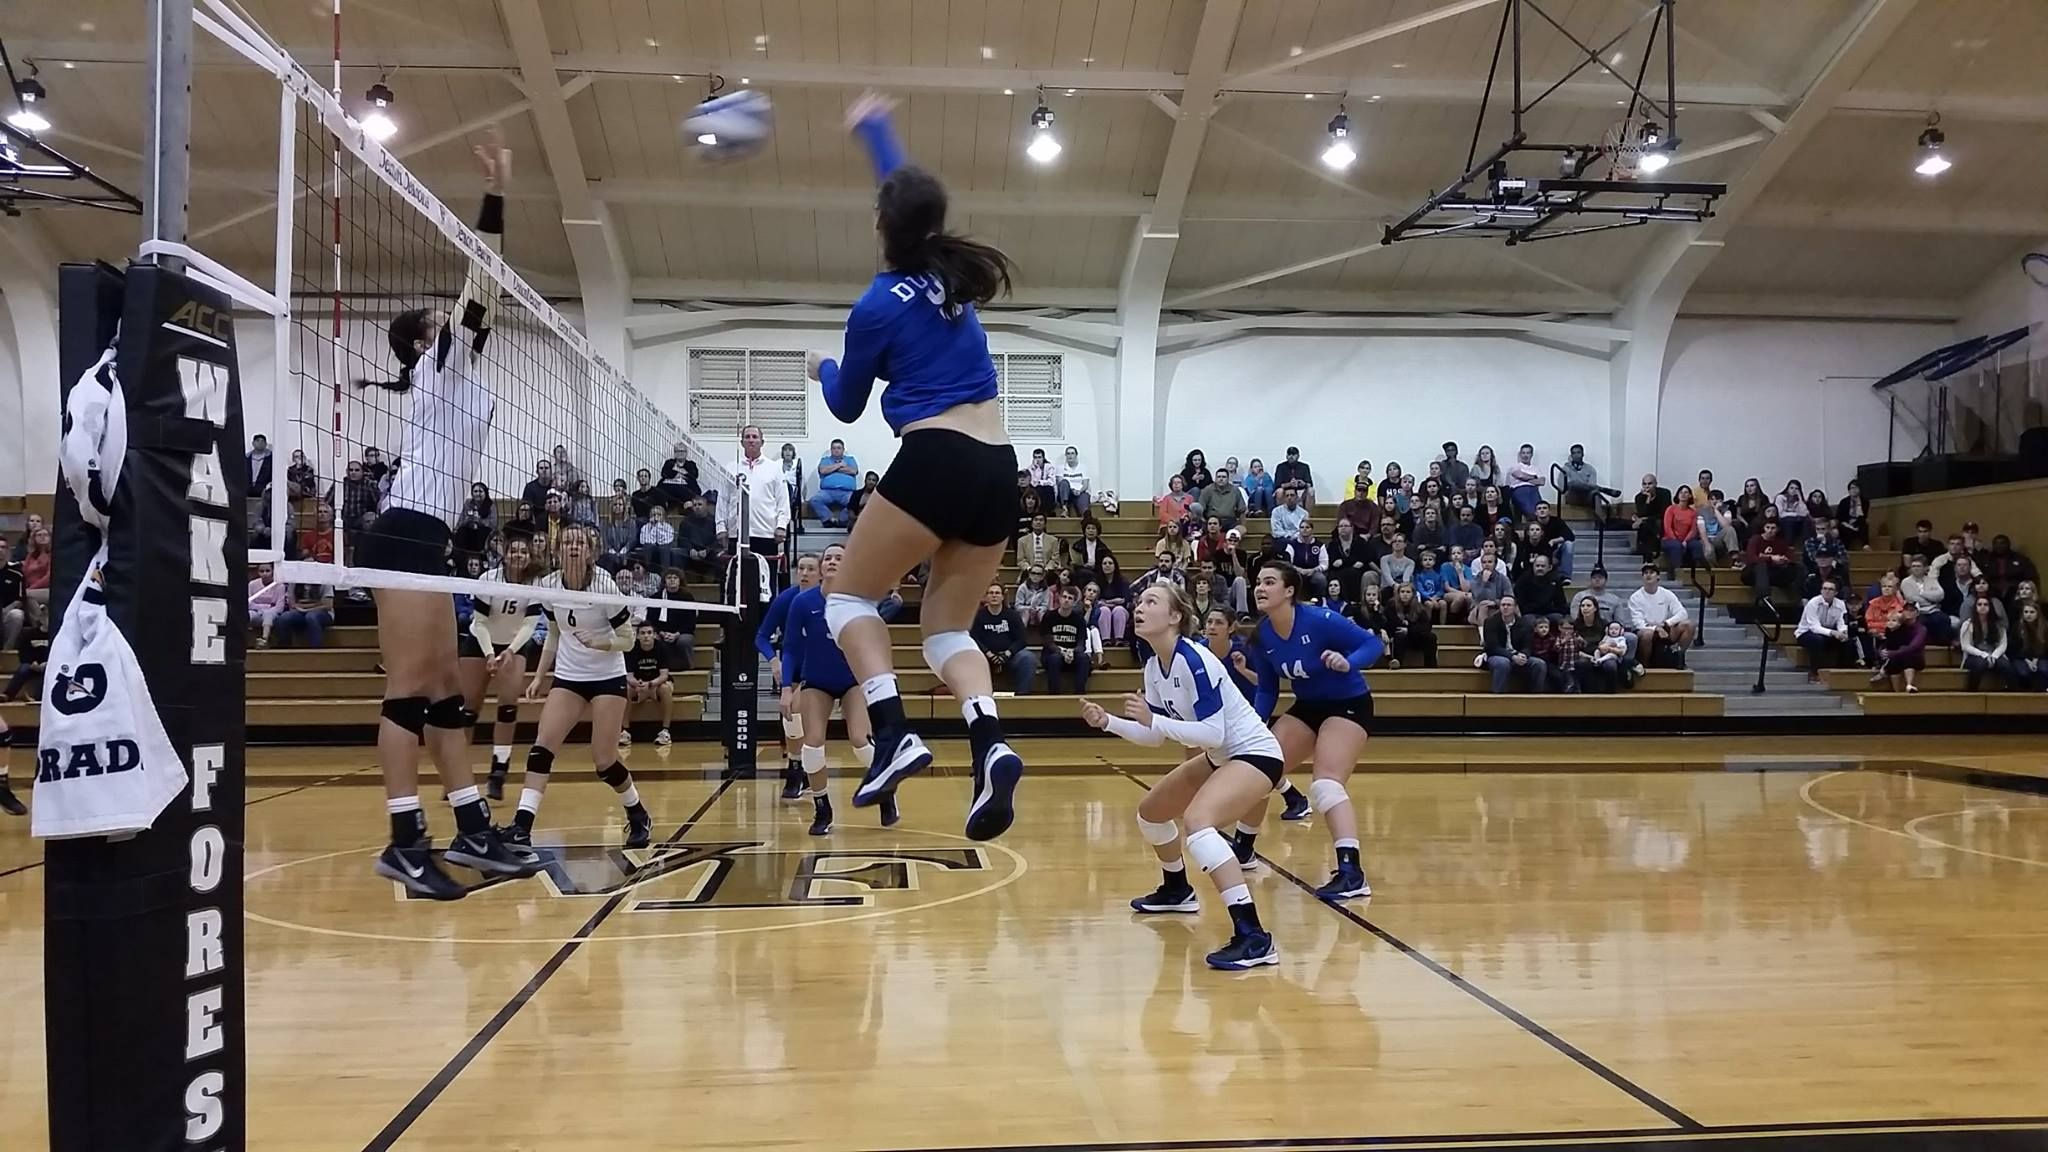 Duke Volleyball Swept Wake Forest For Its 9th Straight Win Goduke Volleyball Gameday Basketball Court